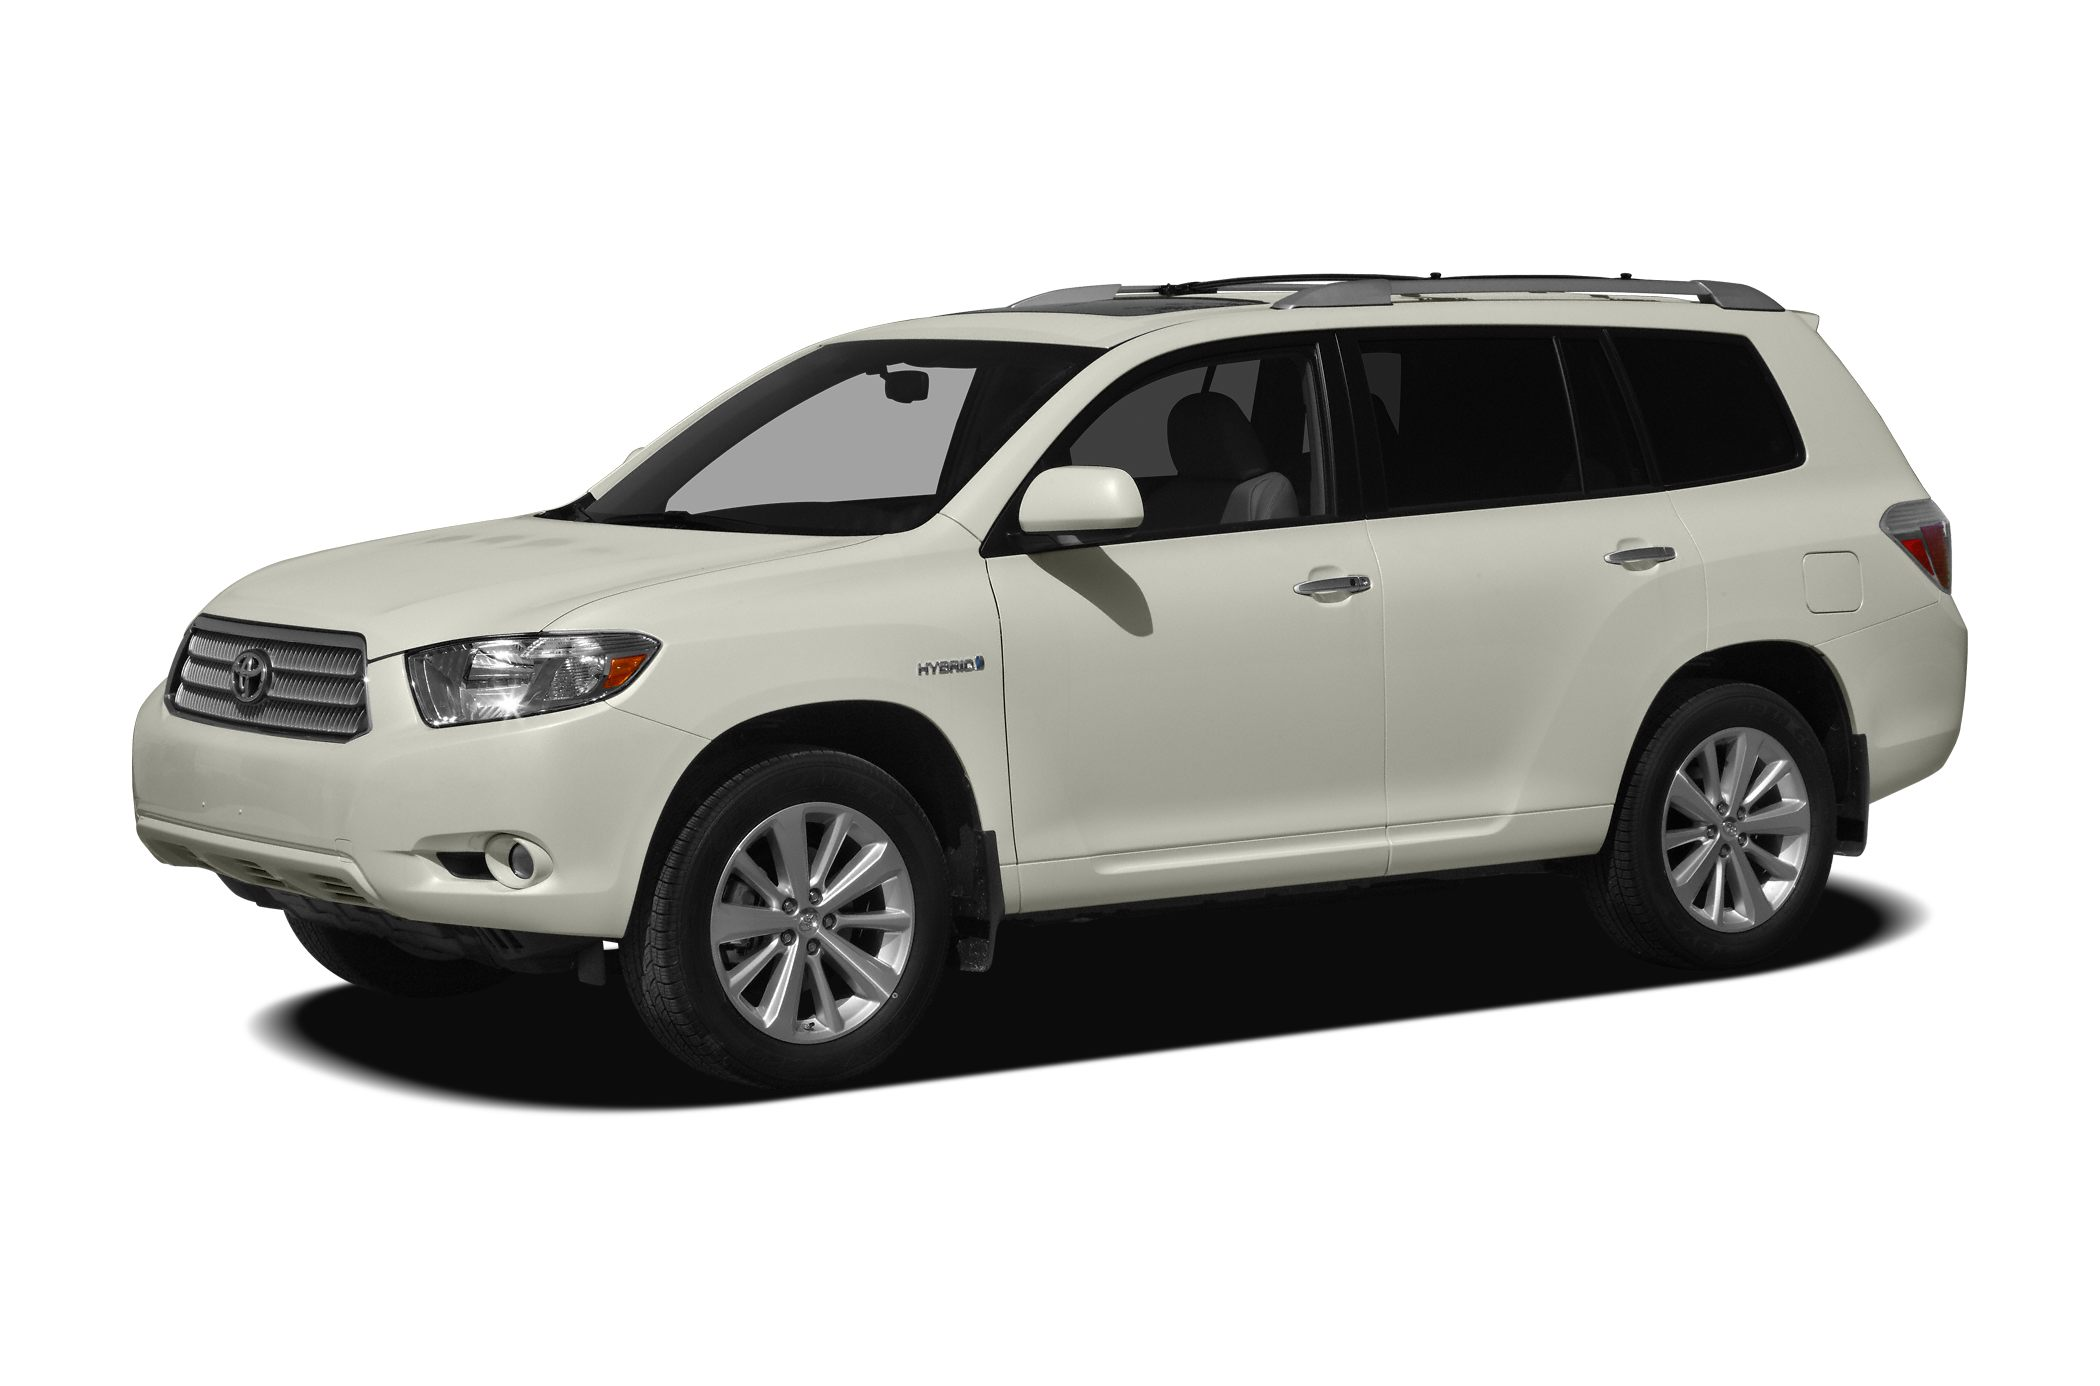 2009 Toyota Highlander Hybrid Pricing And Specs